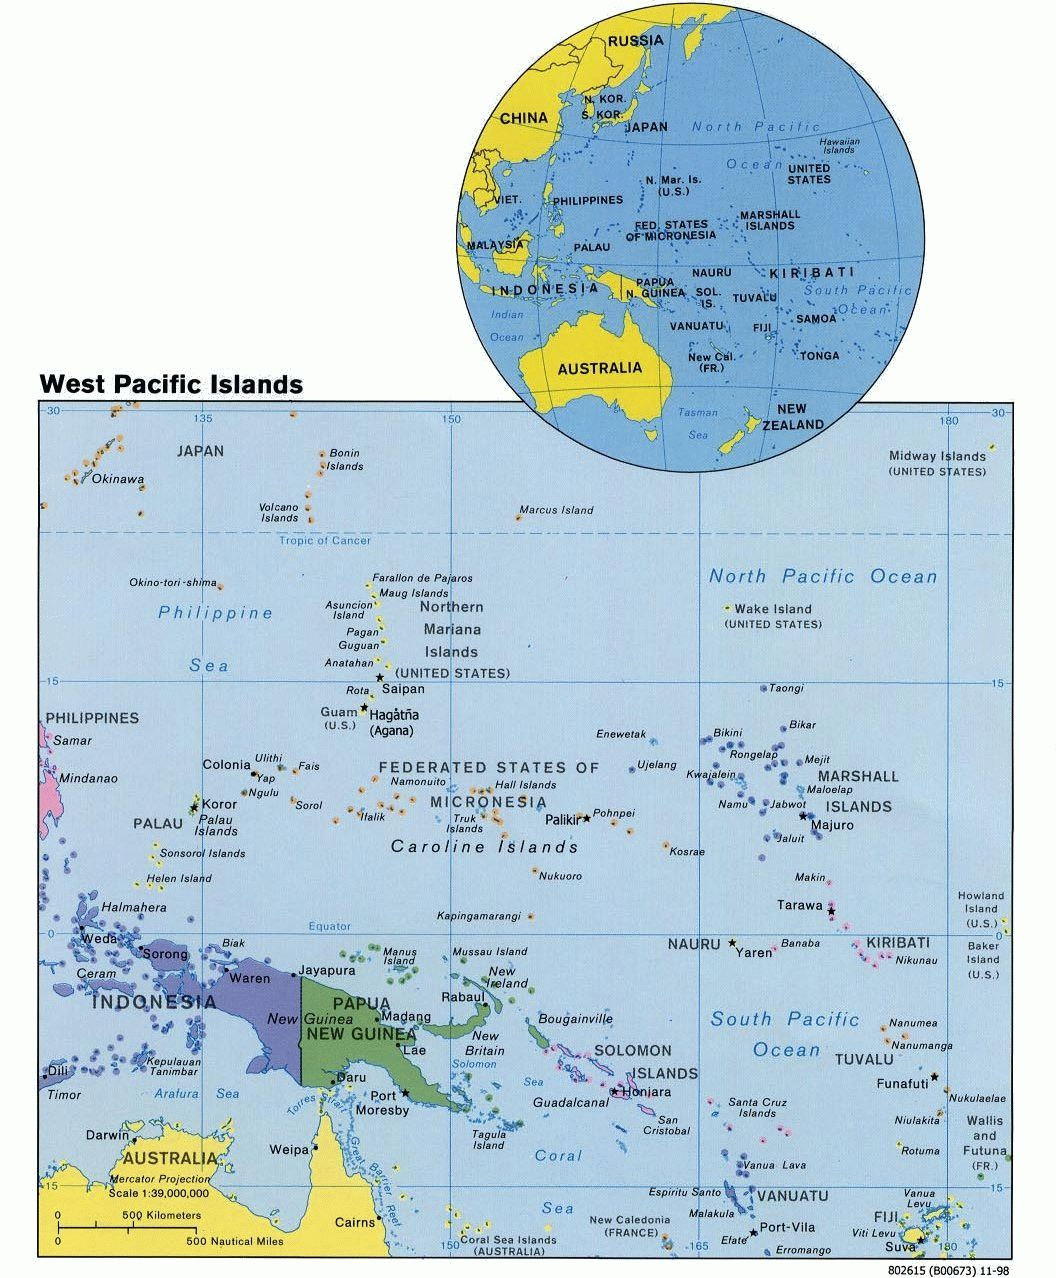 ChamorroBibleorg Map Of The West Pacific Islands Political - West pacific islands map 1998